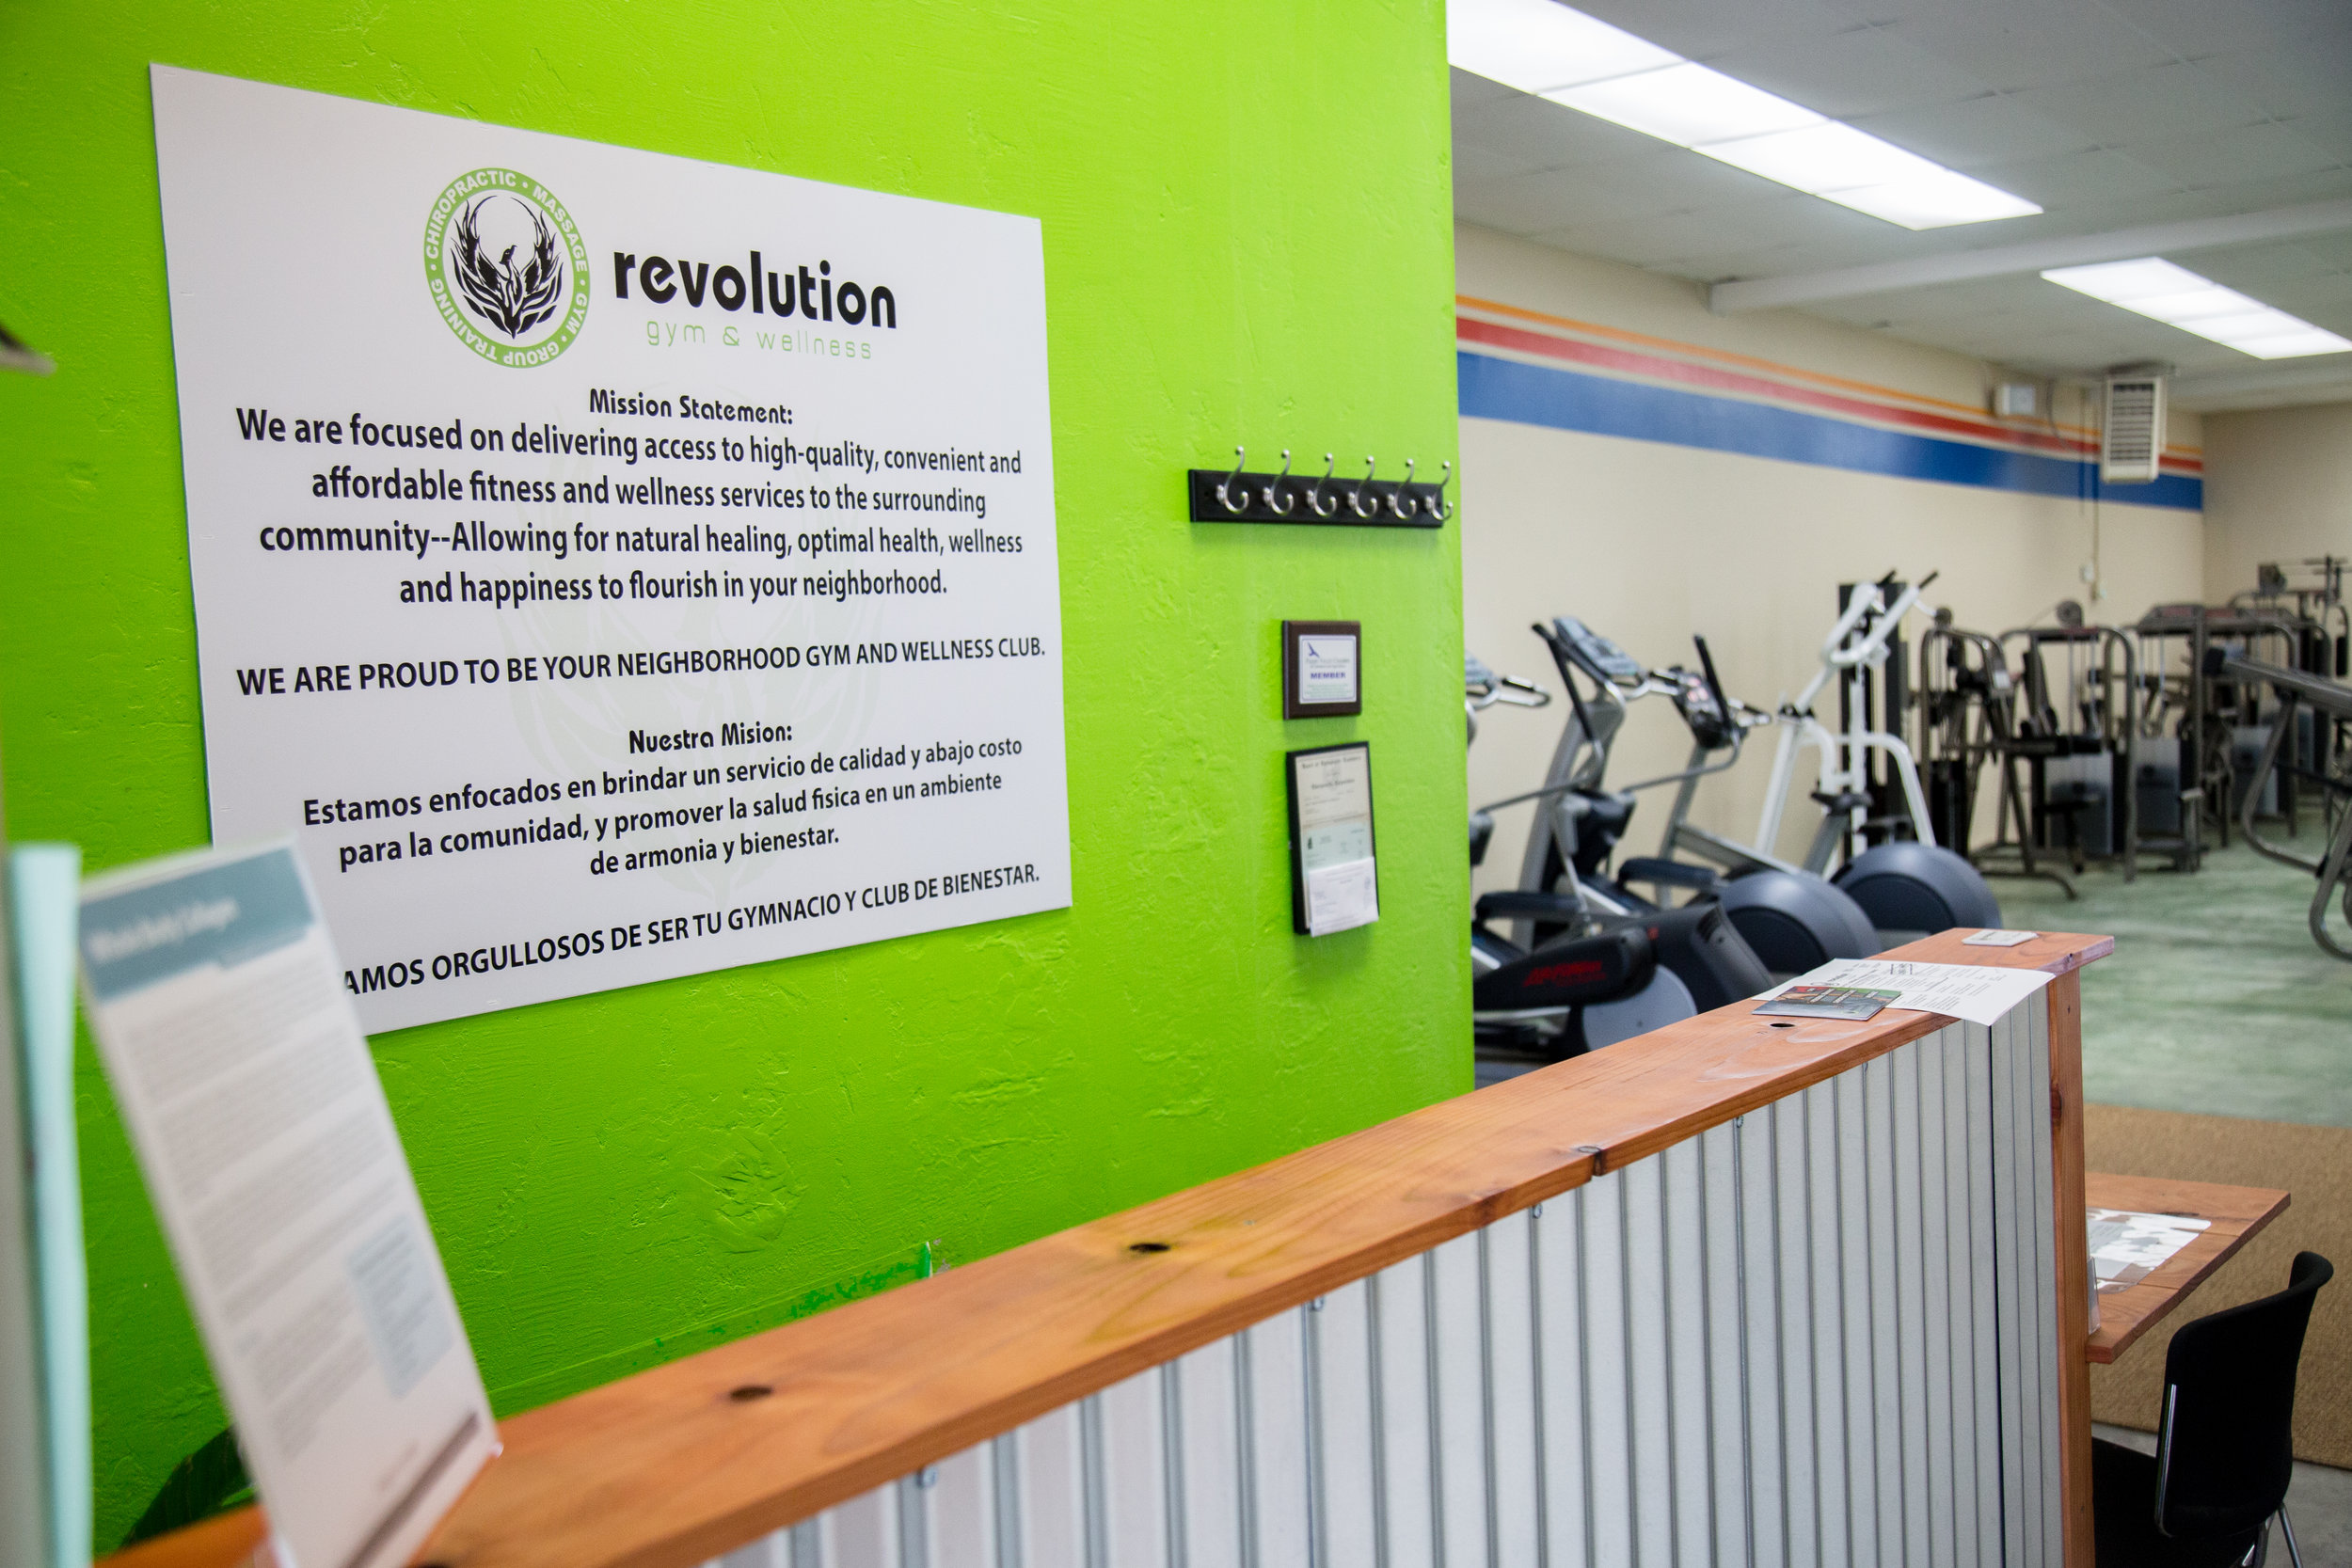 Revolution Gym, Wellness and Chiropractic   978 E. Lake Ave. Watsonville, CA. 95076  (831)288-0627   Follow on:  Facebook  Visit website  HERE